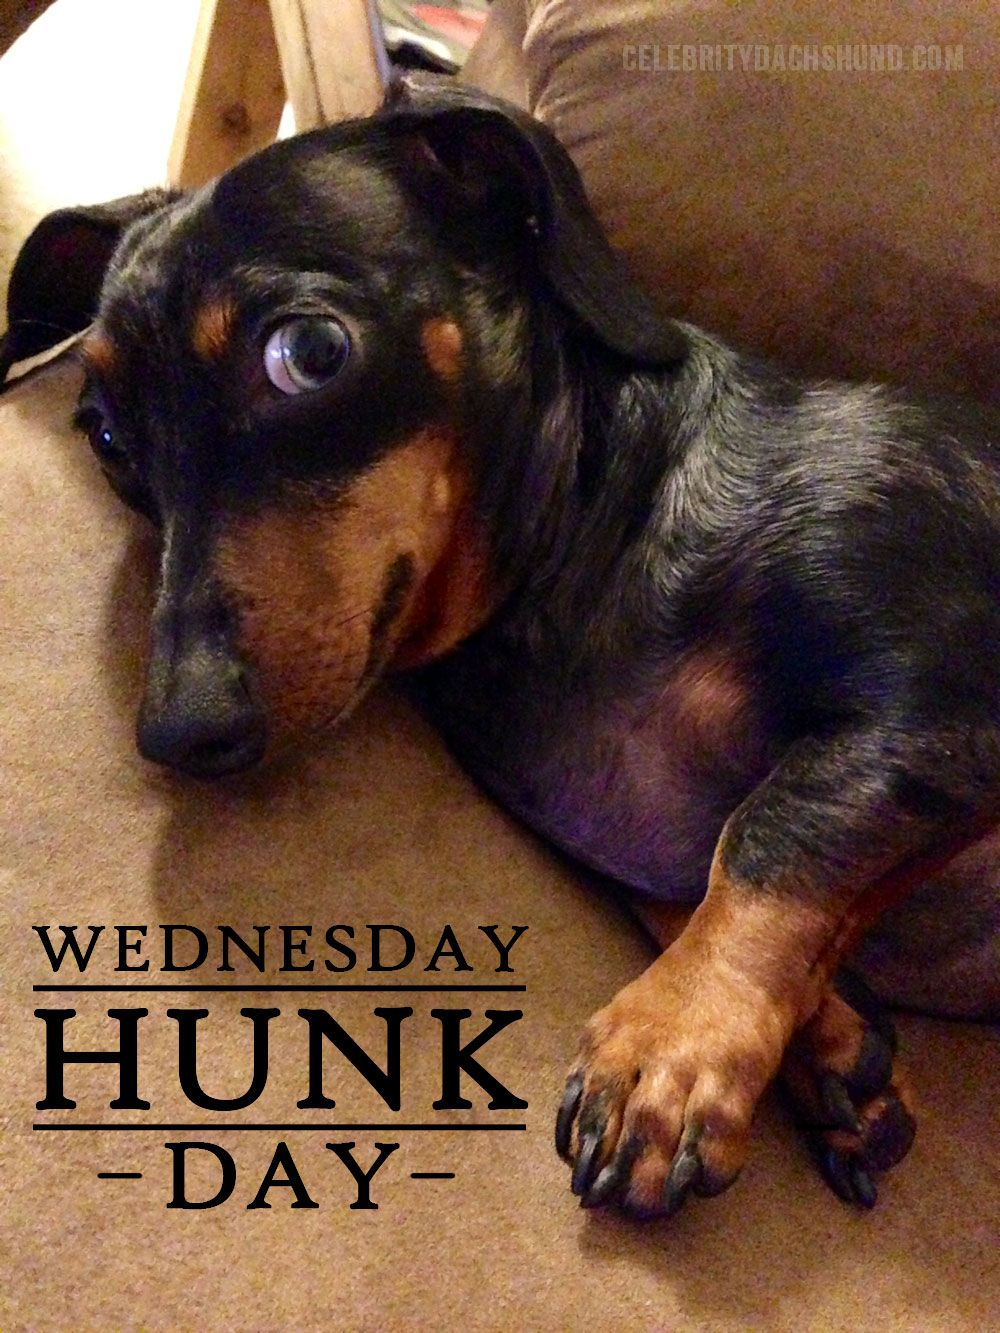 Today S Wednesday Hunk Is Hefeweizen From Dallas Texas Dogs Pets Dachshunds Facebook Com Sodoggonefunny Dengan Gambar